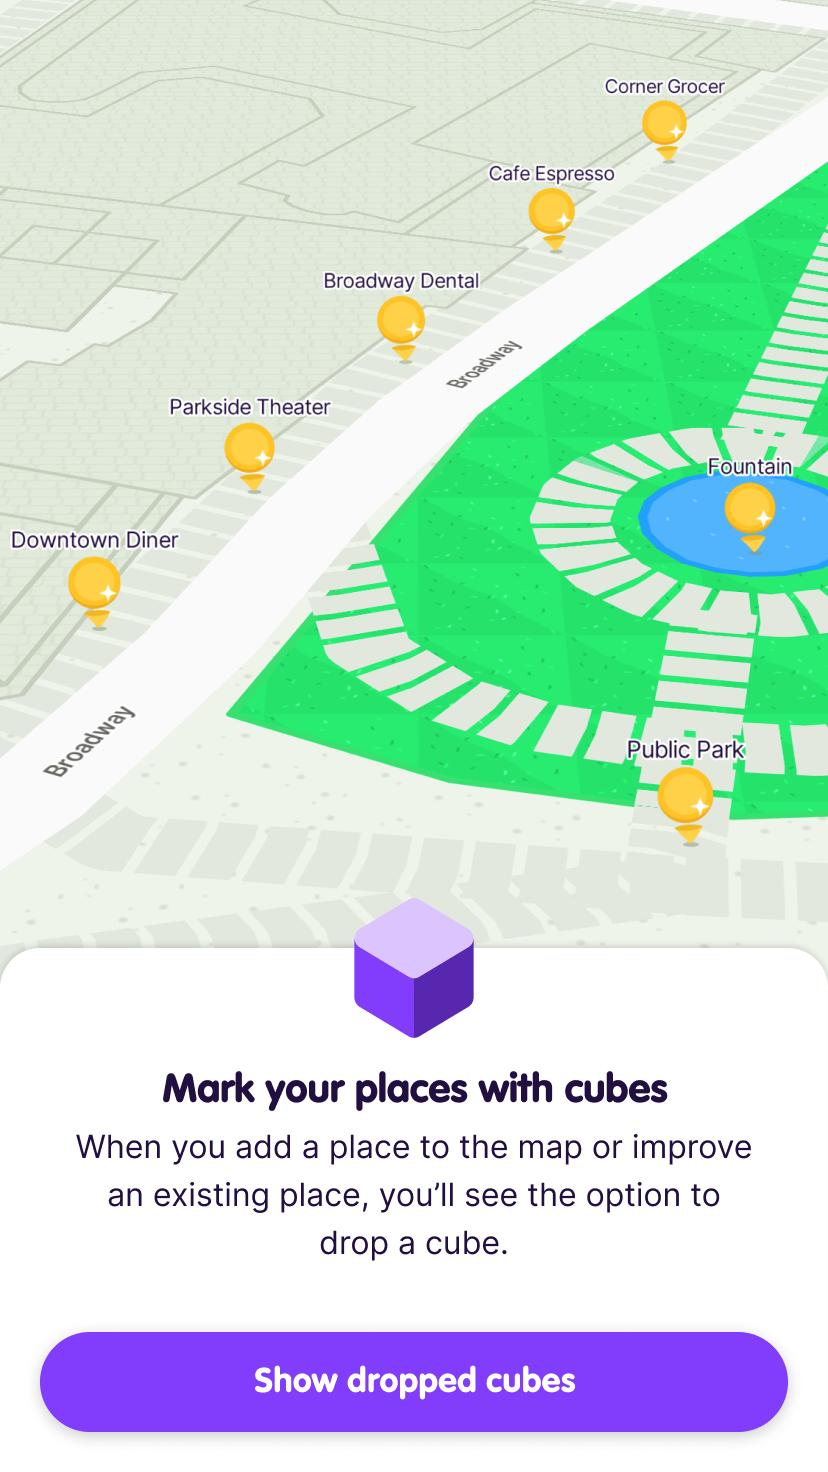 Screenshot from the app intro showing nearby places available for points on the map and prompting the user to tap a button to Show dropped cubes.